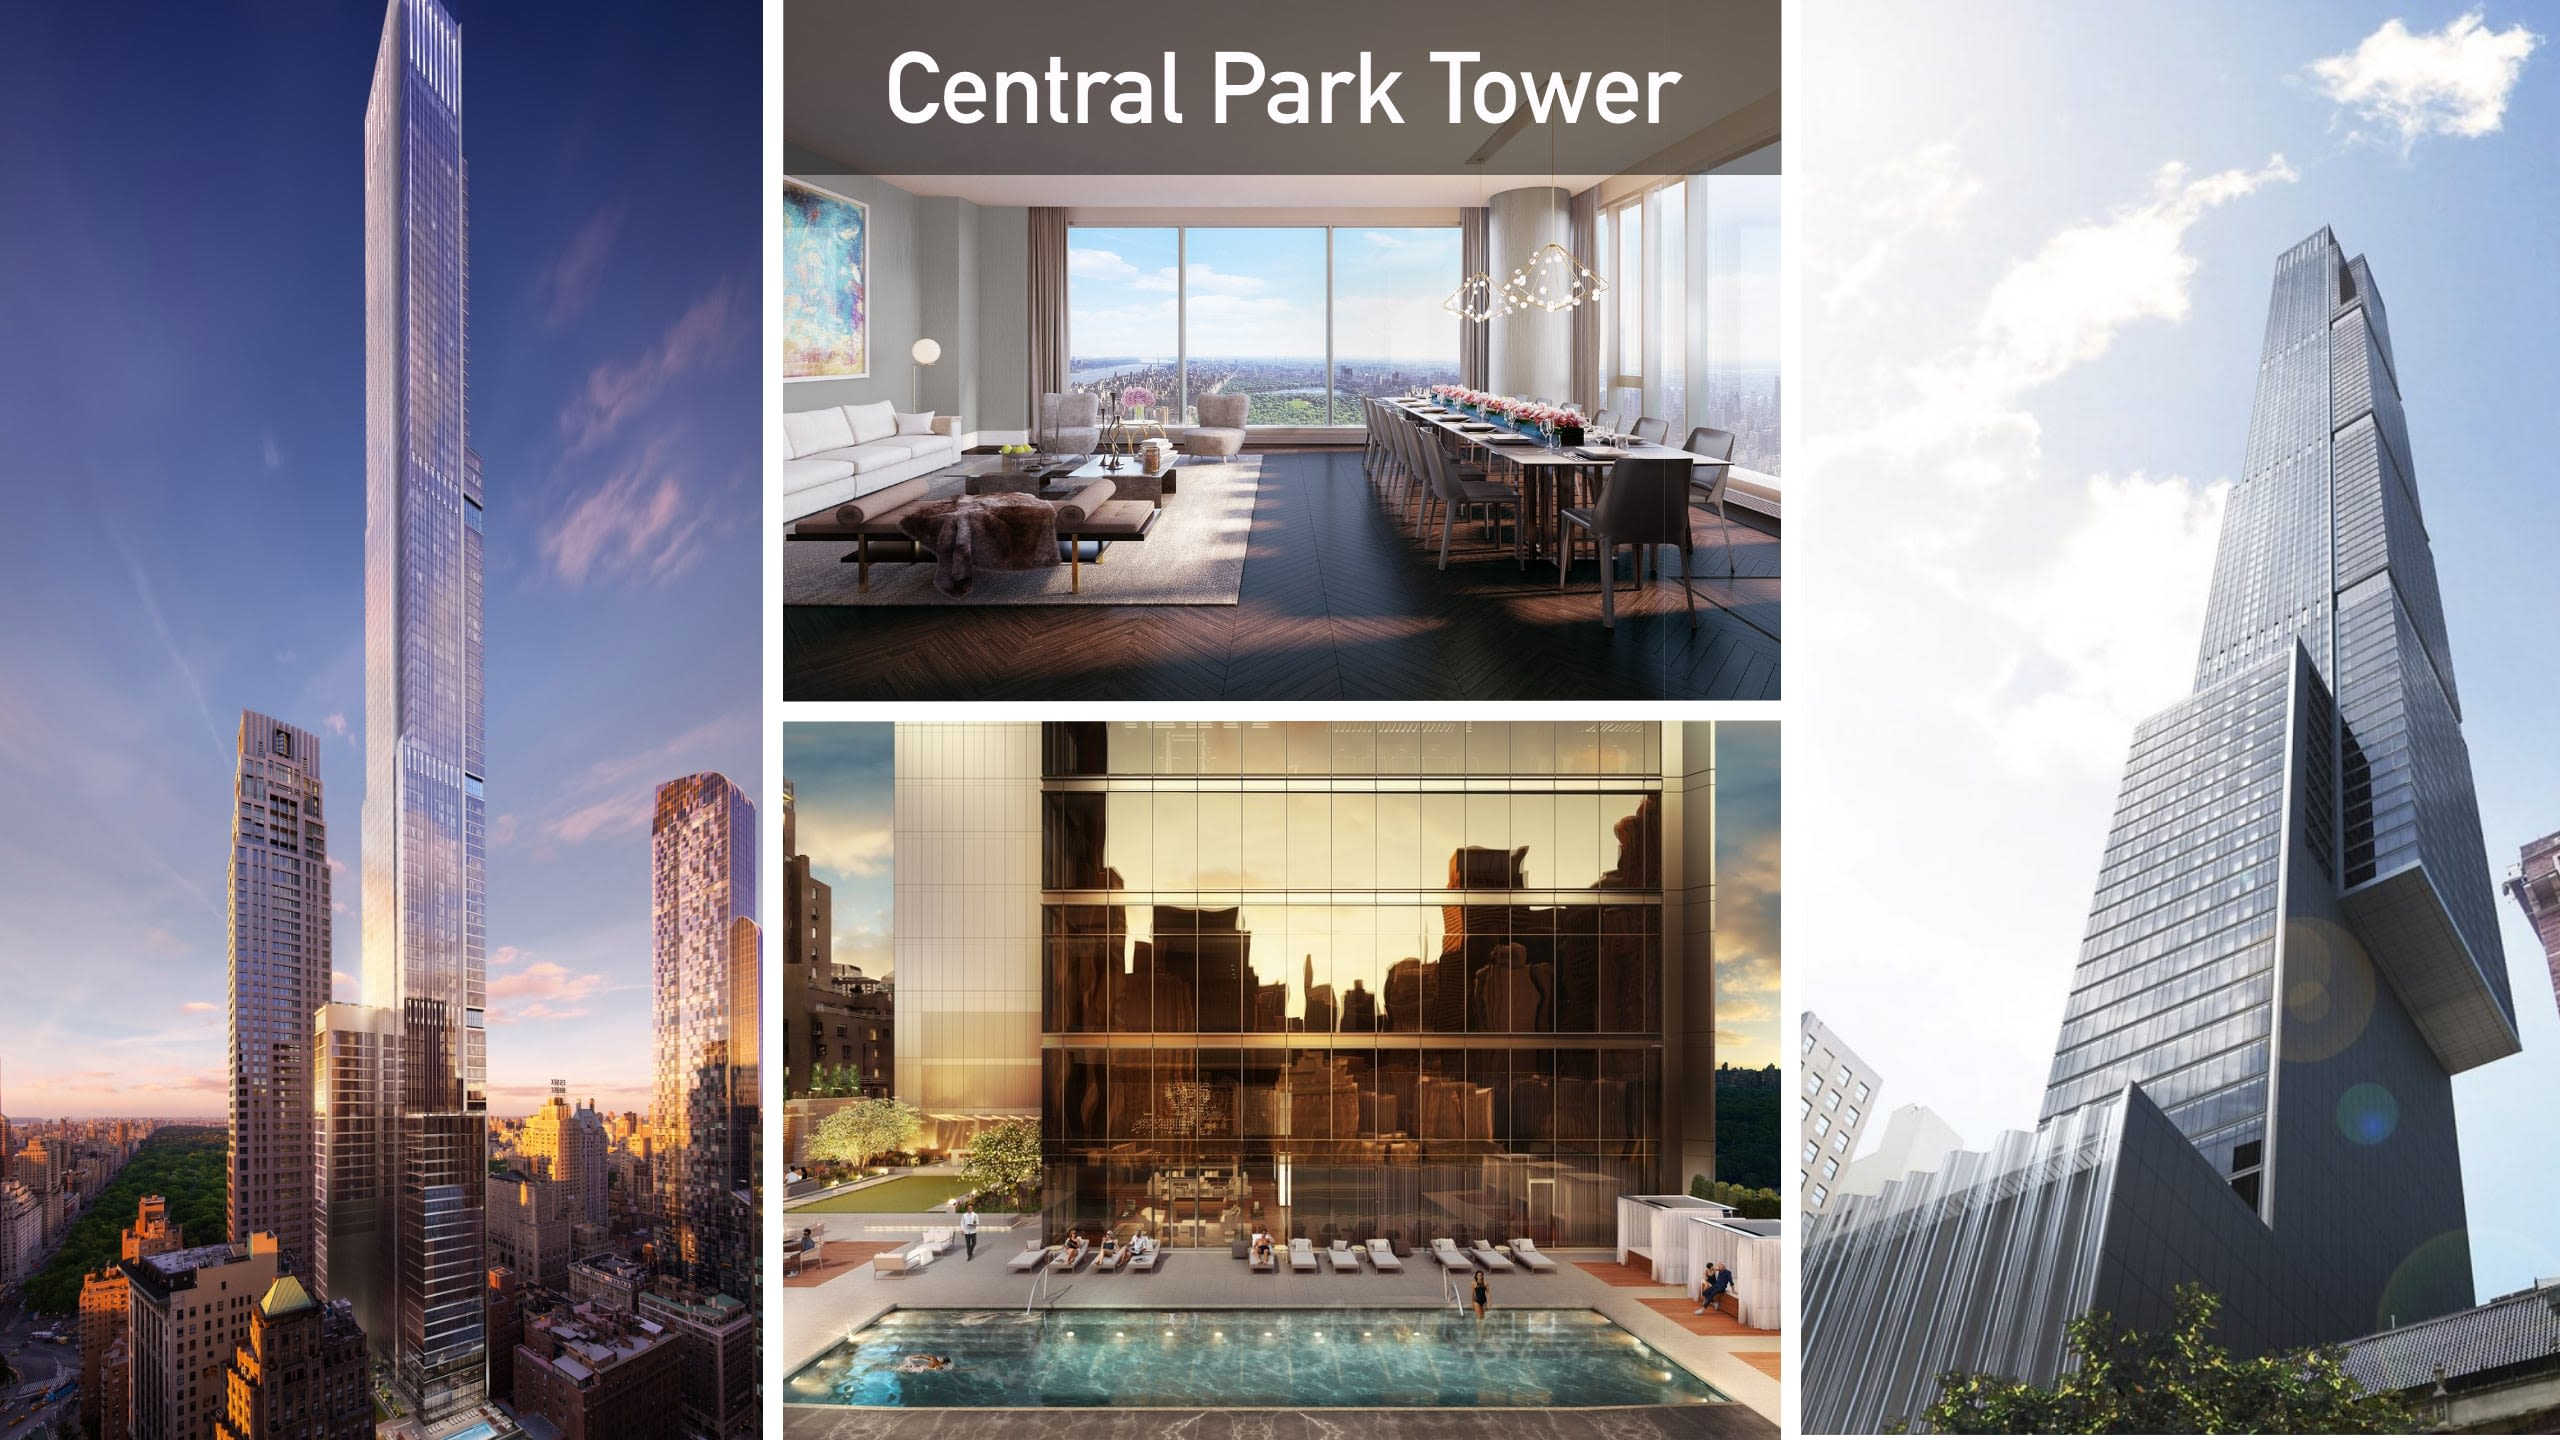 Central Park Tower views